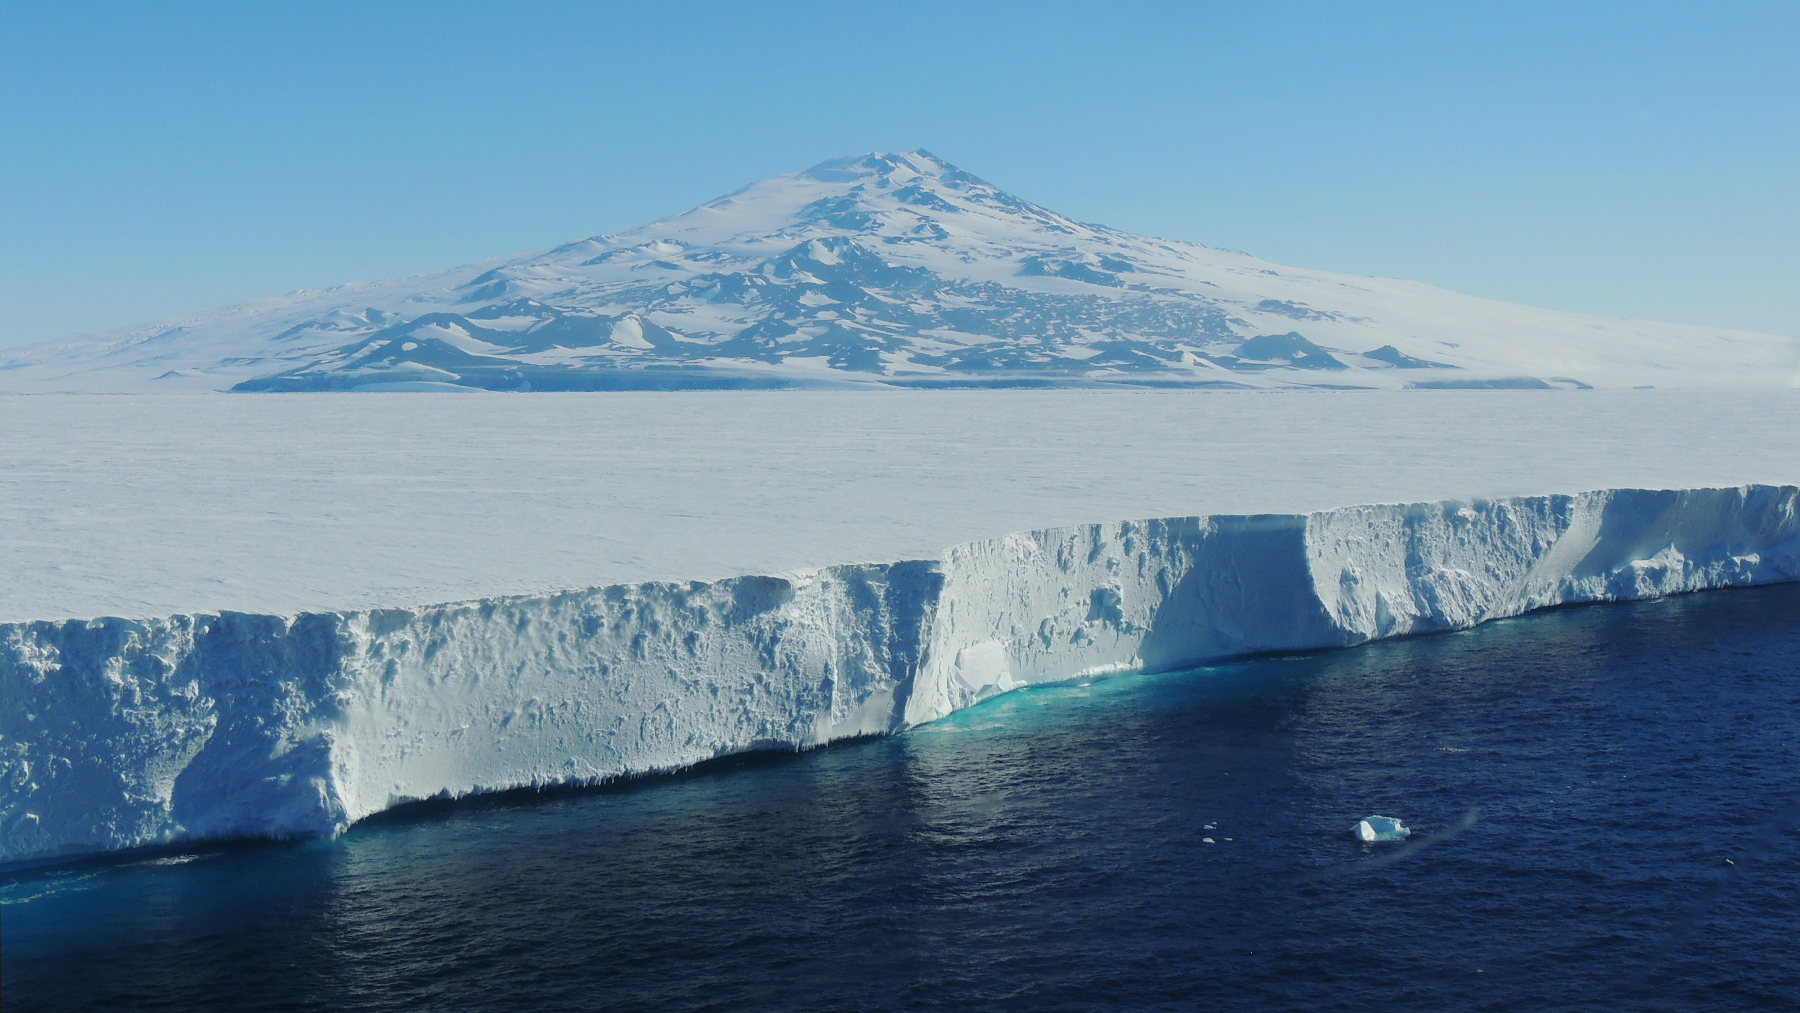 The Ross Ice Shelf and Mount Terror. The Ross Ice Shelf is the largest ice shelf on Antarctica. Photo courtesy Gillen D'Arcy Wood